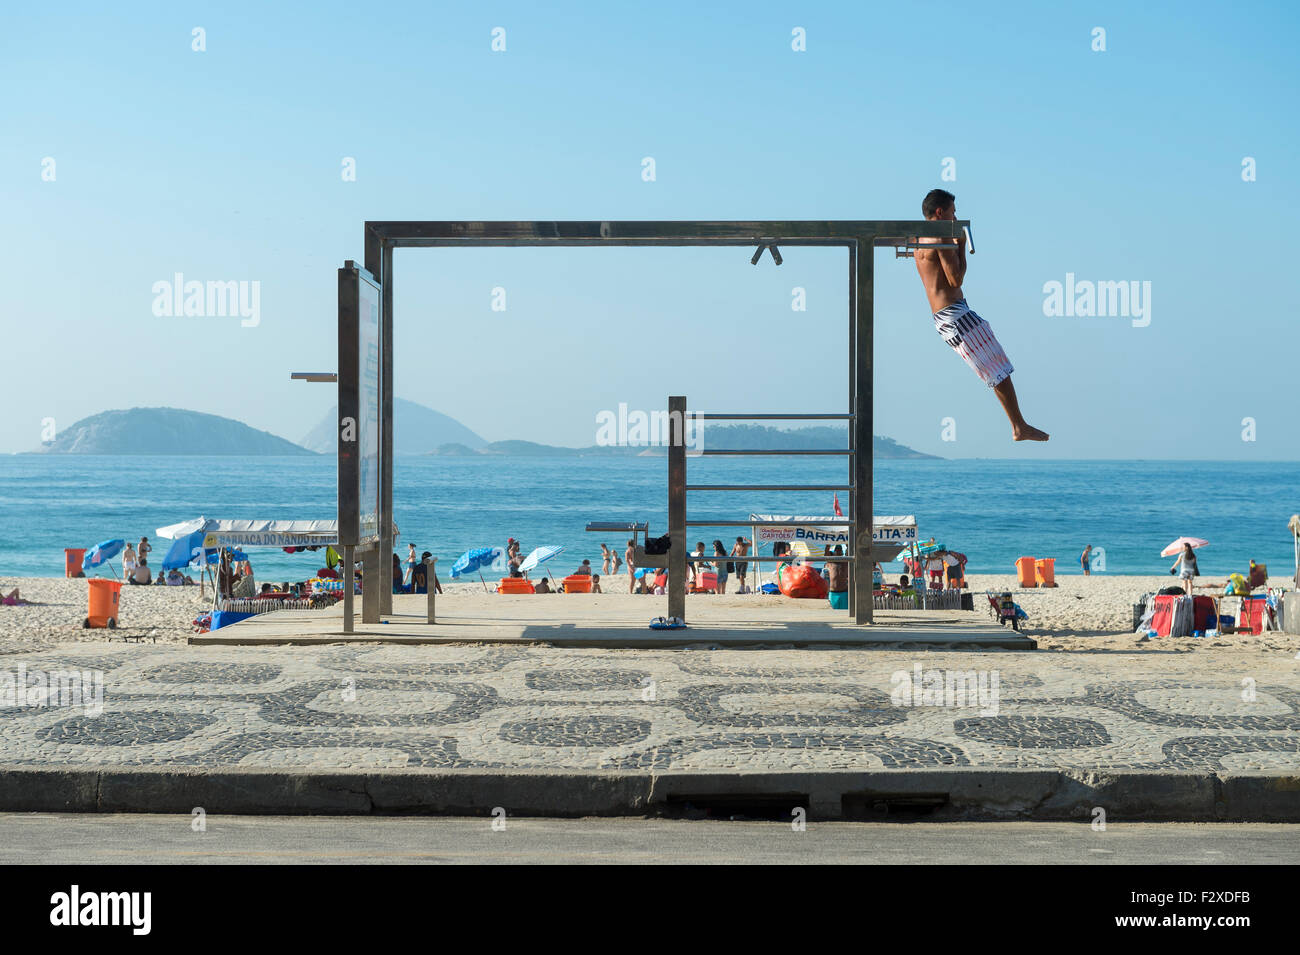 RIO DE JANEIRO, BRAZIL - FEBRUARY 22, 2015: Young man utilizes one of the many outdoor fitness stations on Ipanema - Stock Image